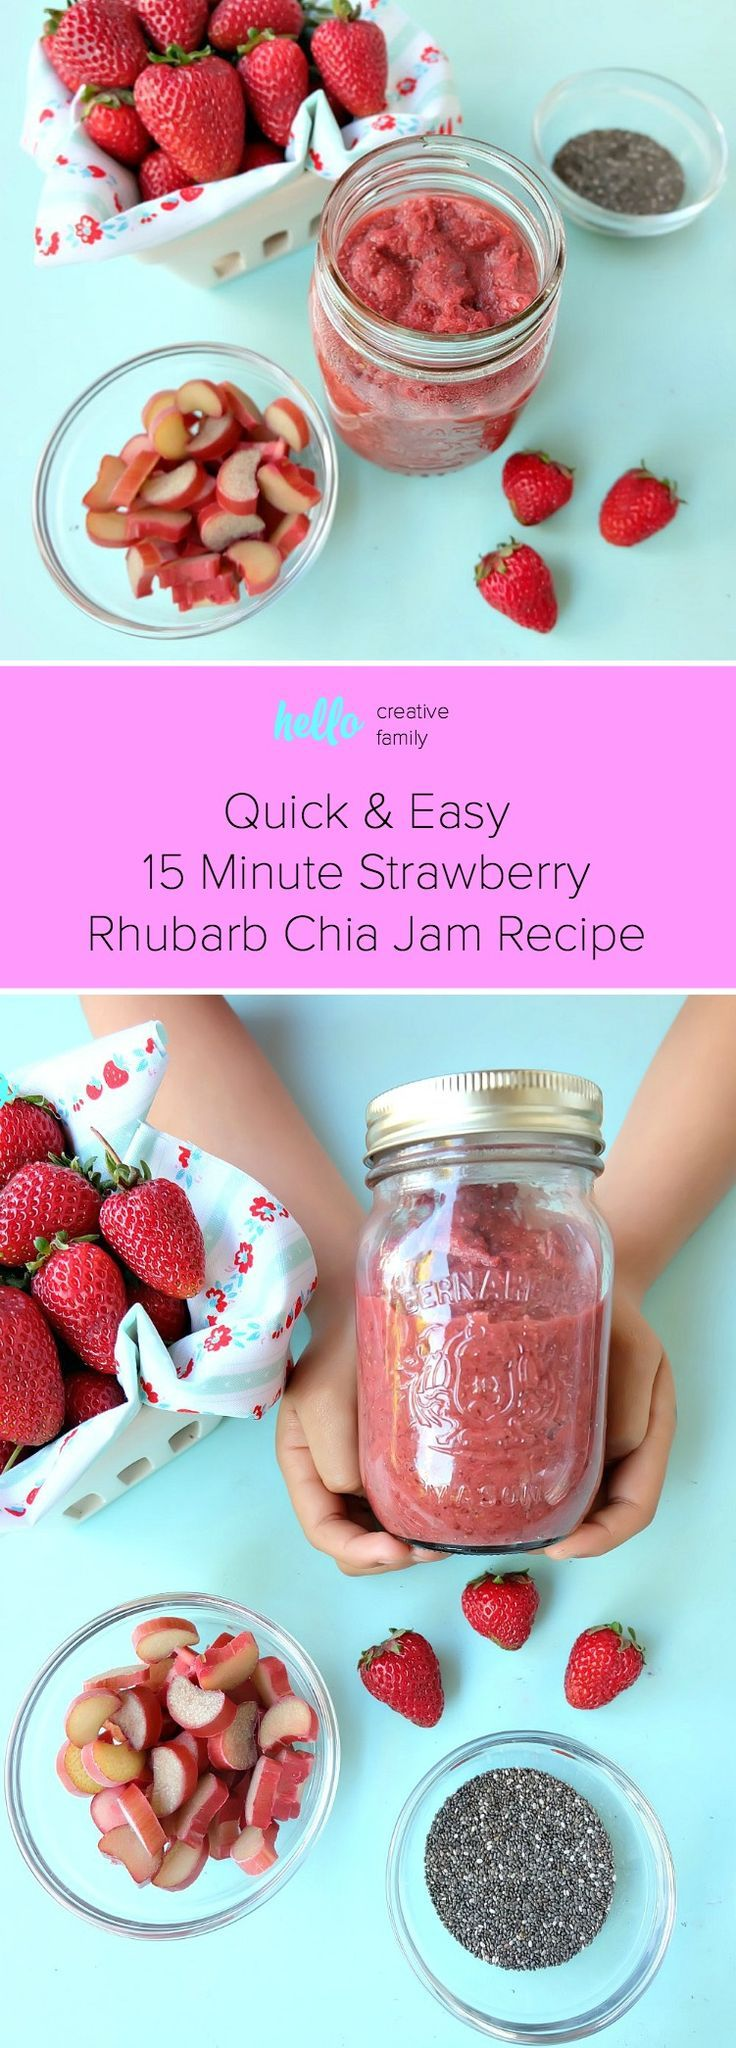 Quick and Easy 15 Minute Strawberry Rhubarb Chia Jam Recipe